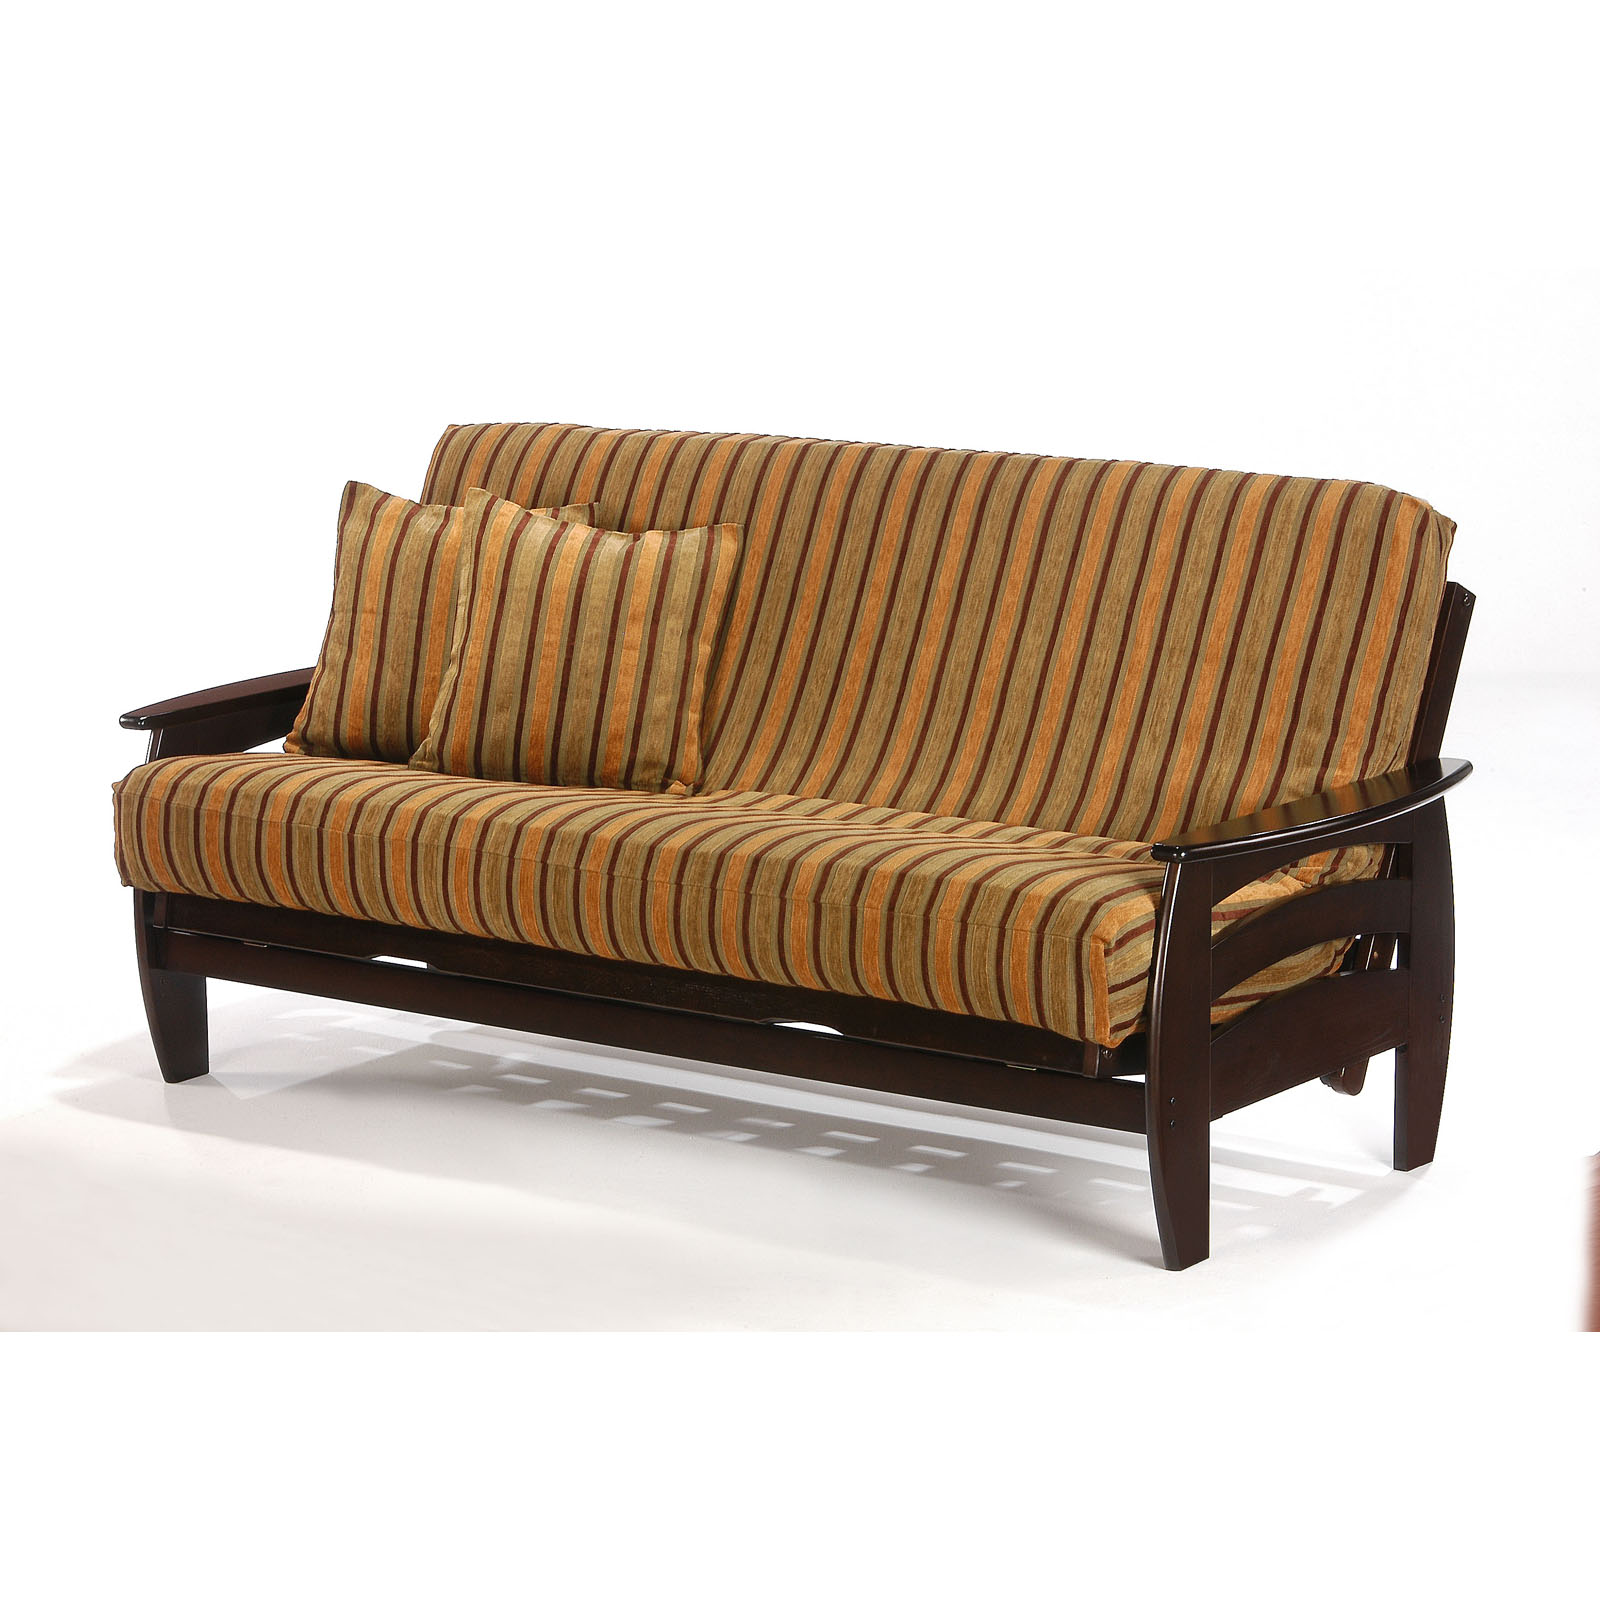 corona queen futon by night and day furniture online image corona queen futon by night and day furniture online in futons  rh   organizeit